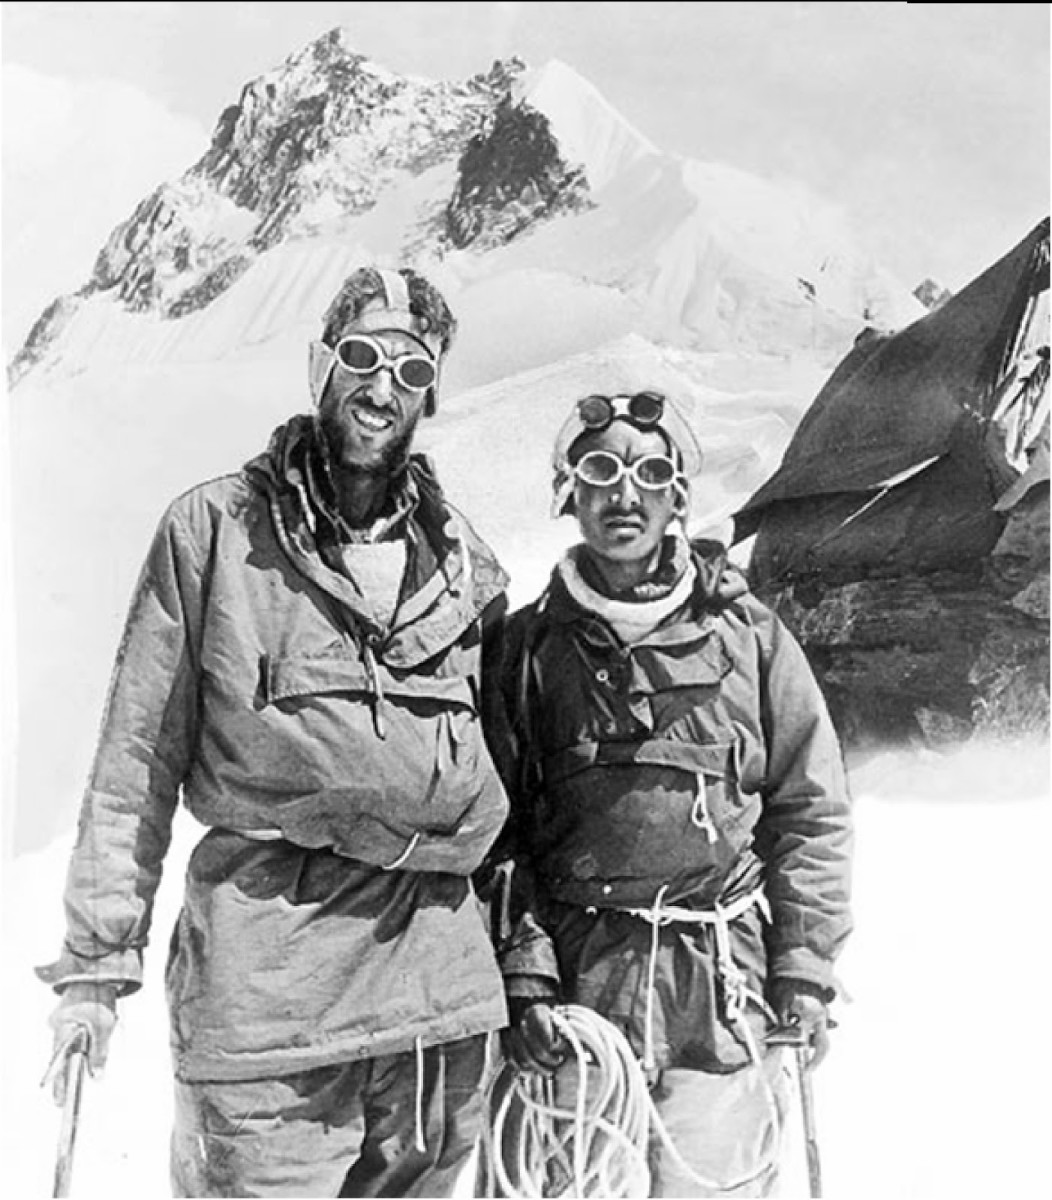 The drive to keep trying after failed attempts landed Norgay & Hillary atop the highest peak in the planet in 1953.